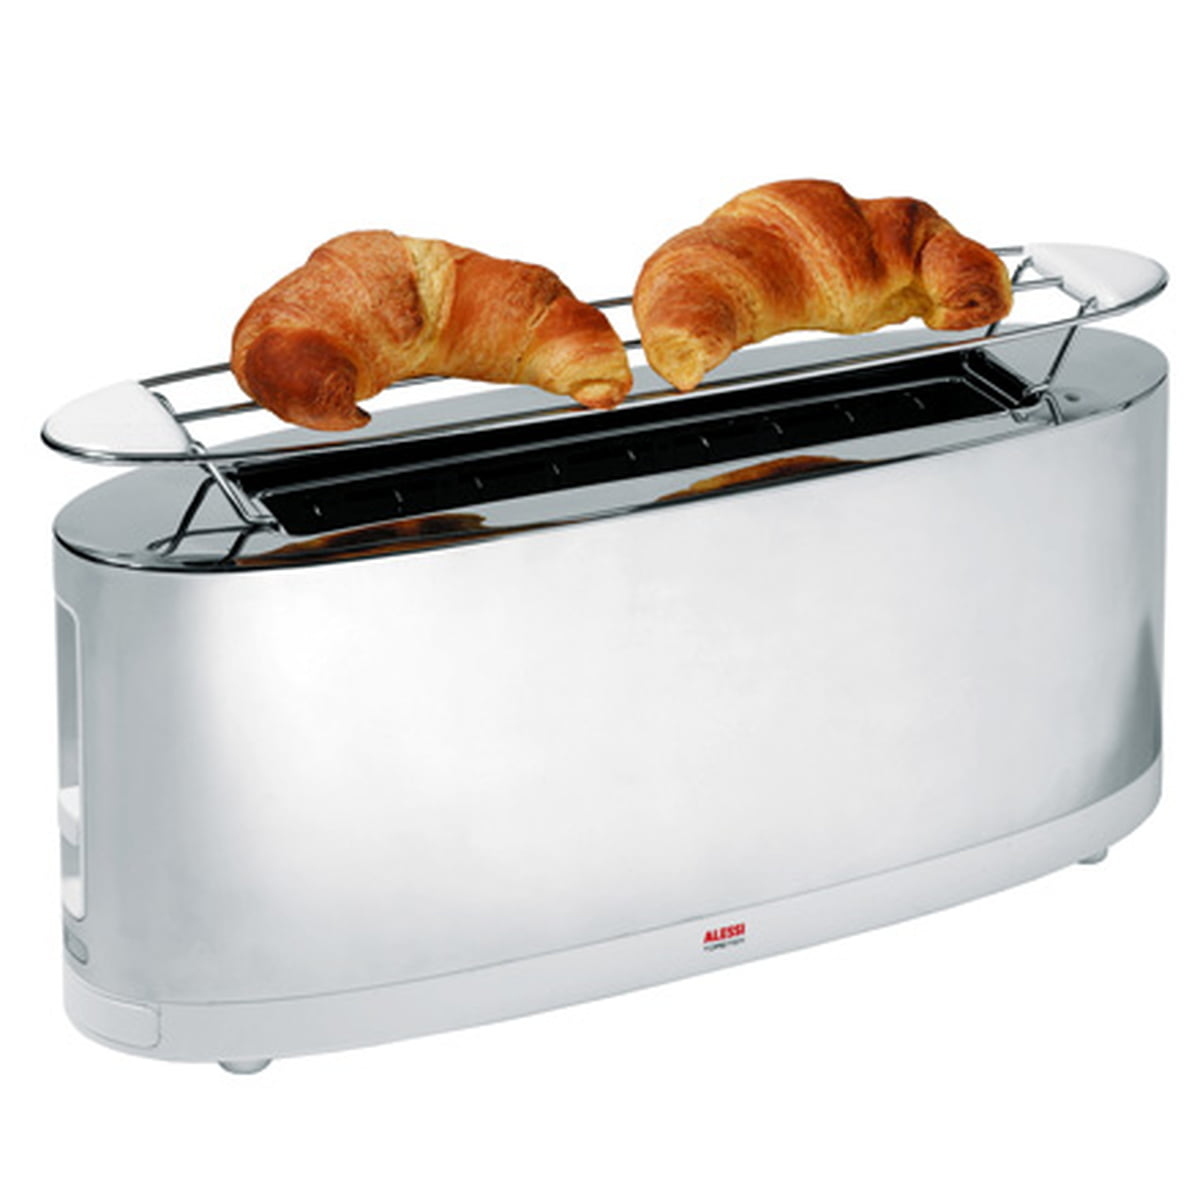 alessi toaster sg w by stefano giovannoni - toaster sg